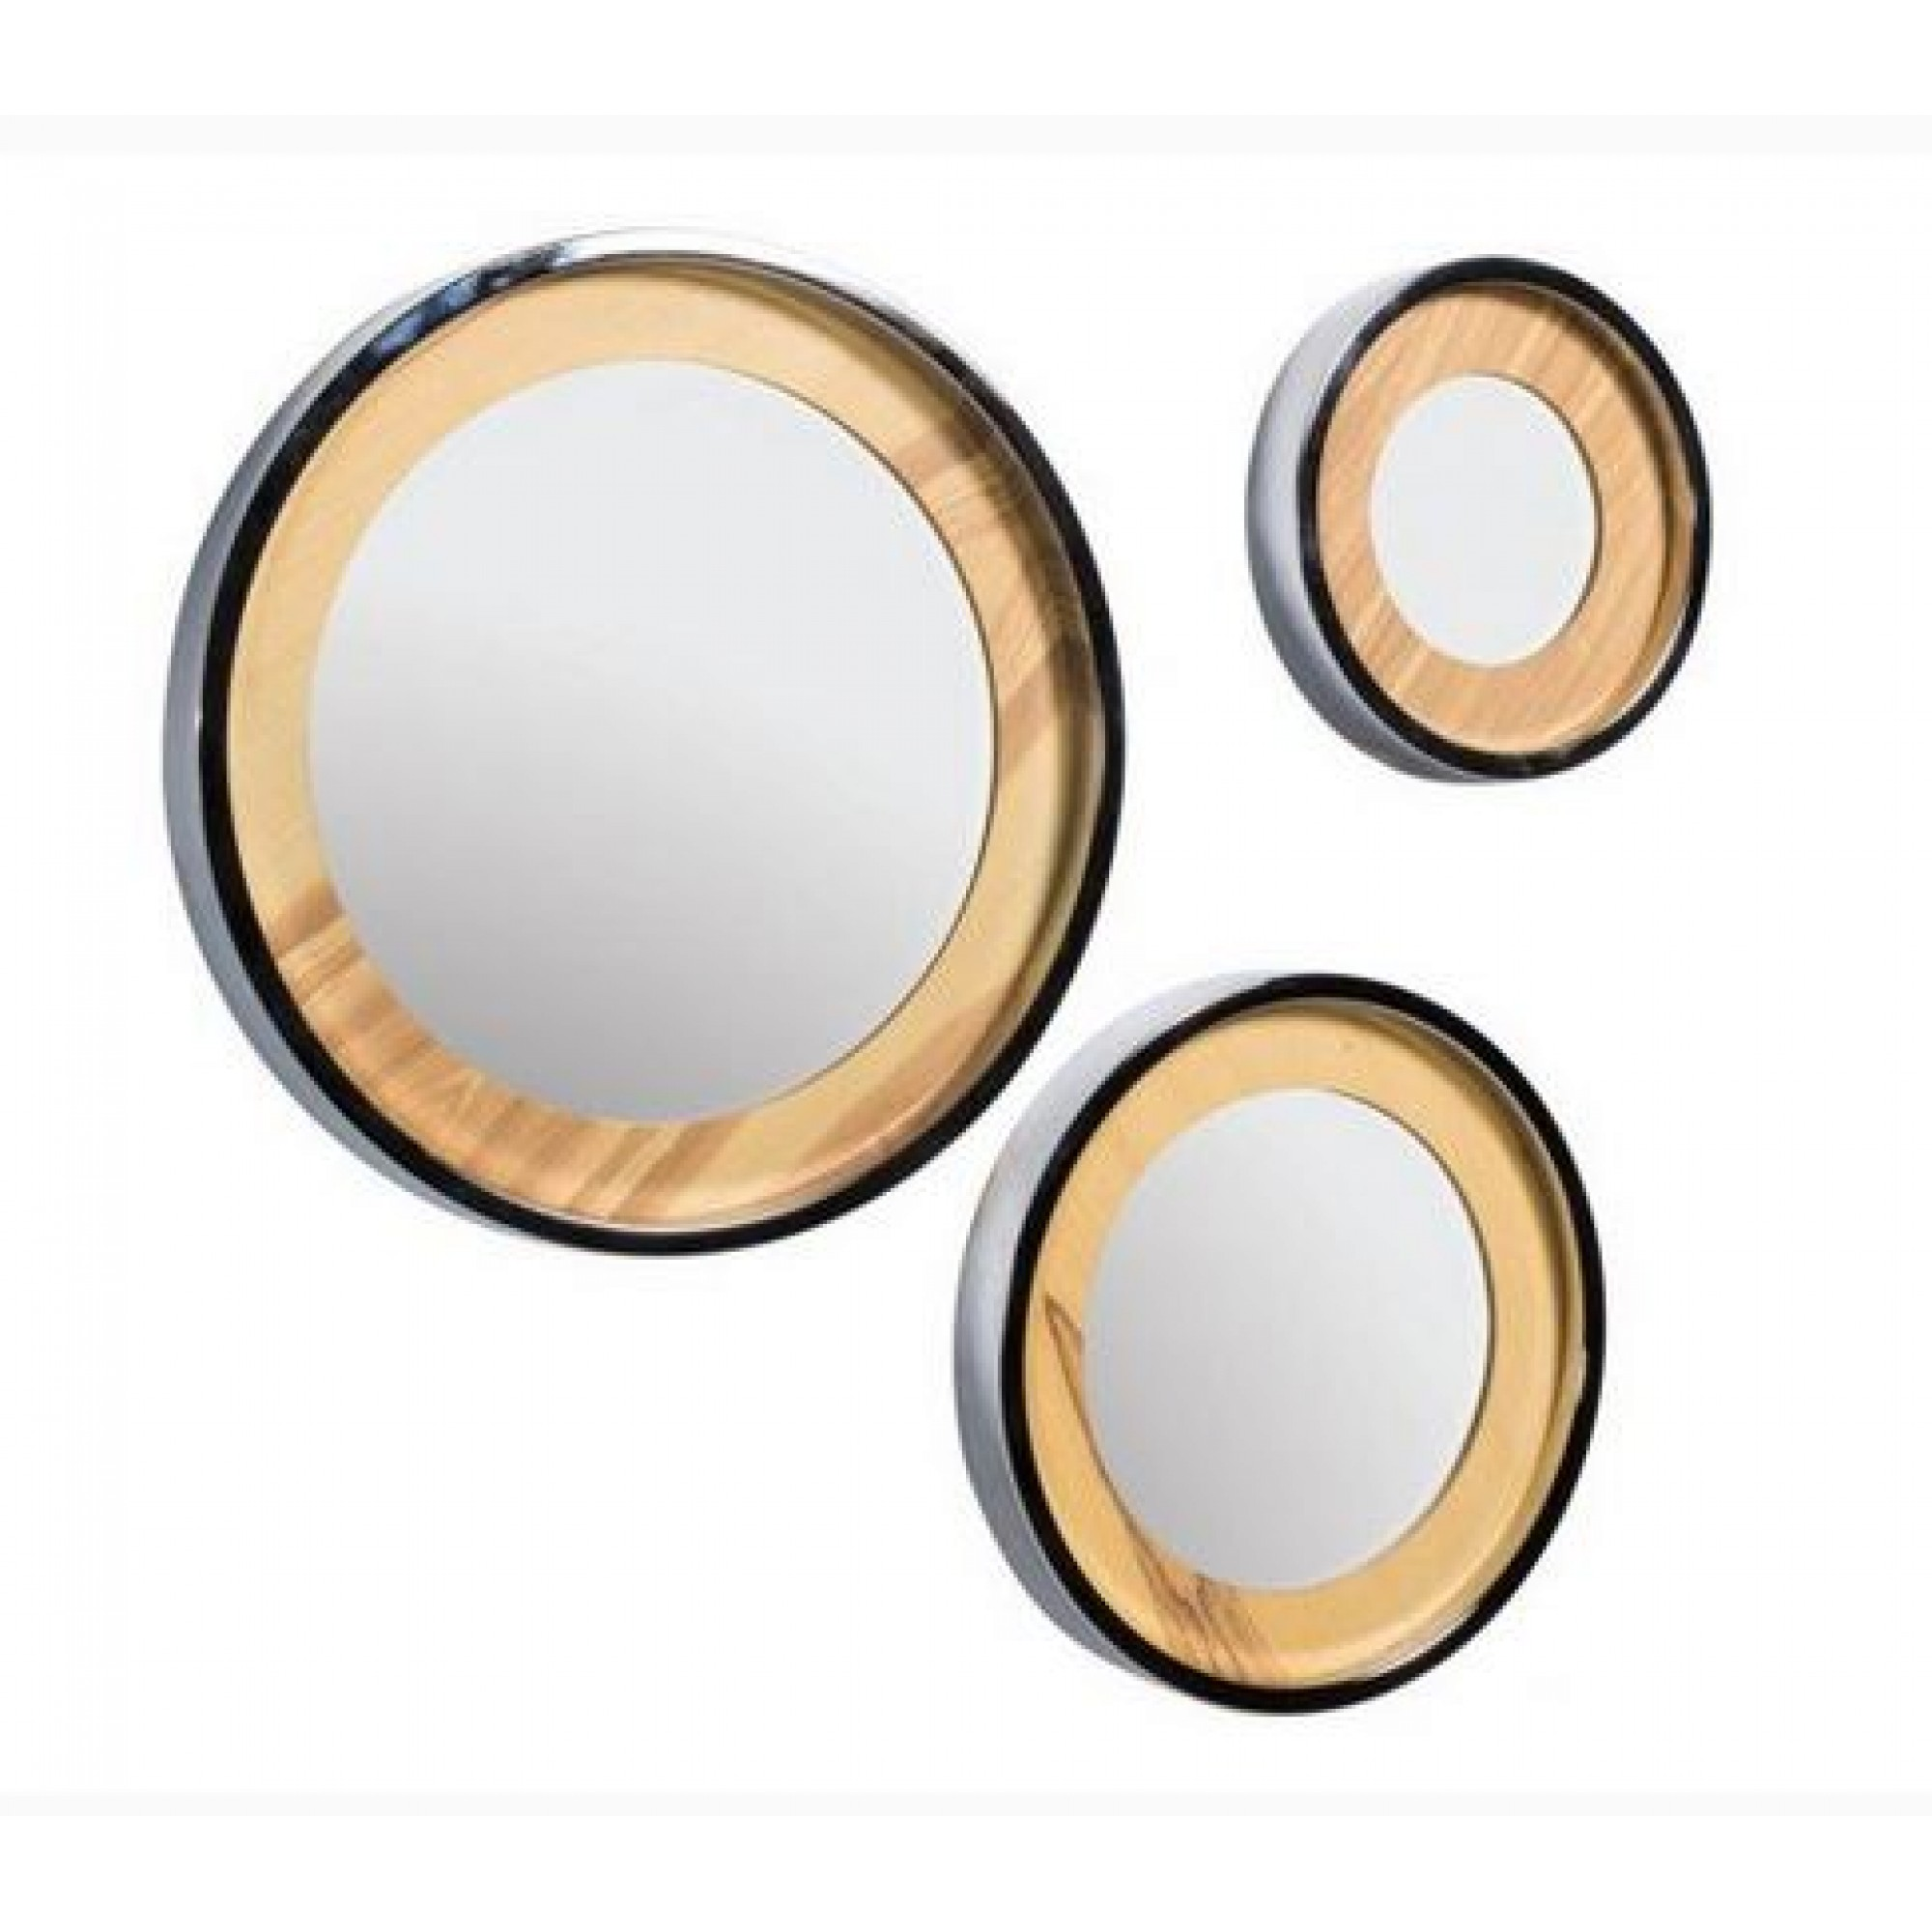 Set of 3 round mirrors with nickel frame - TRIO